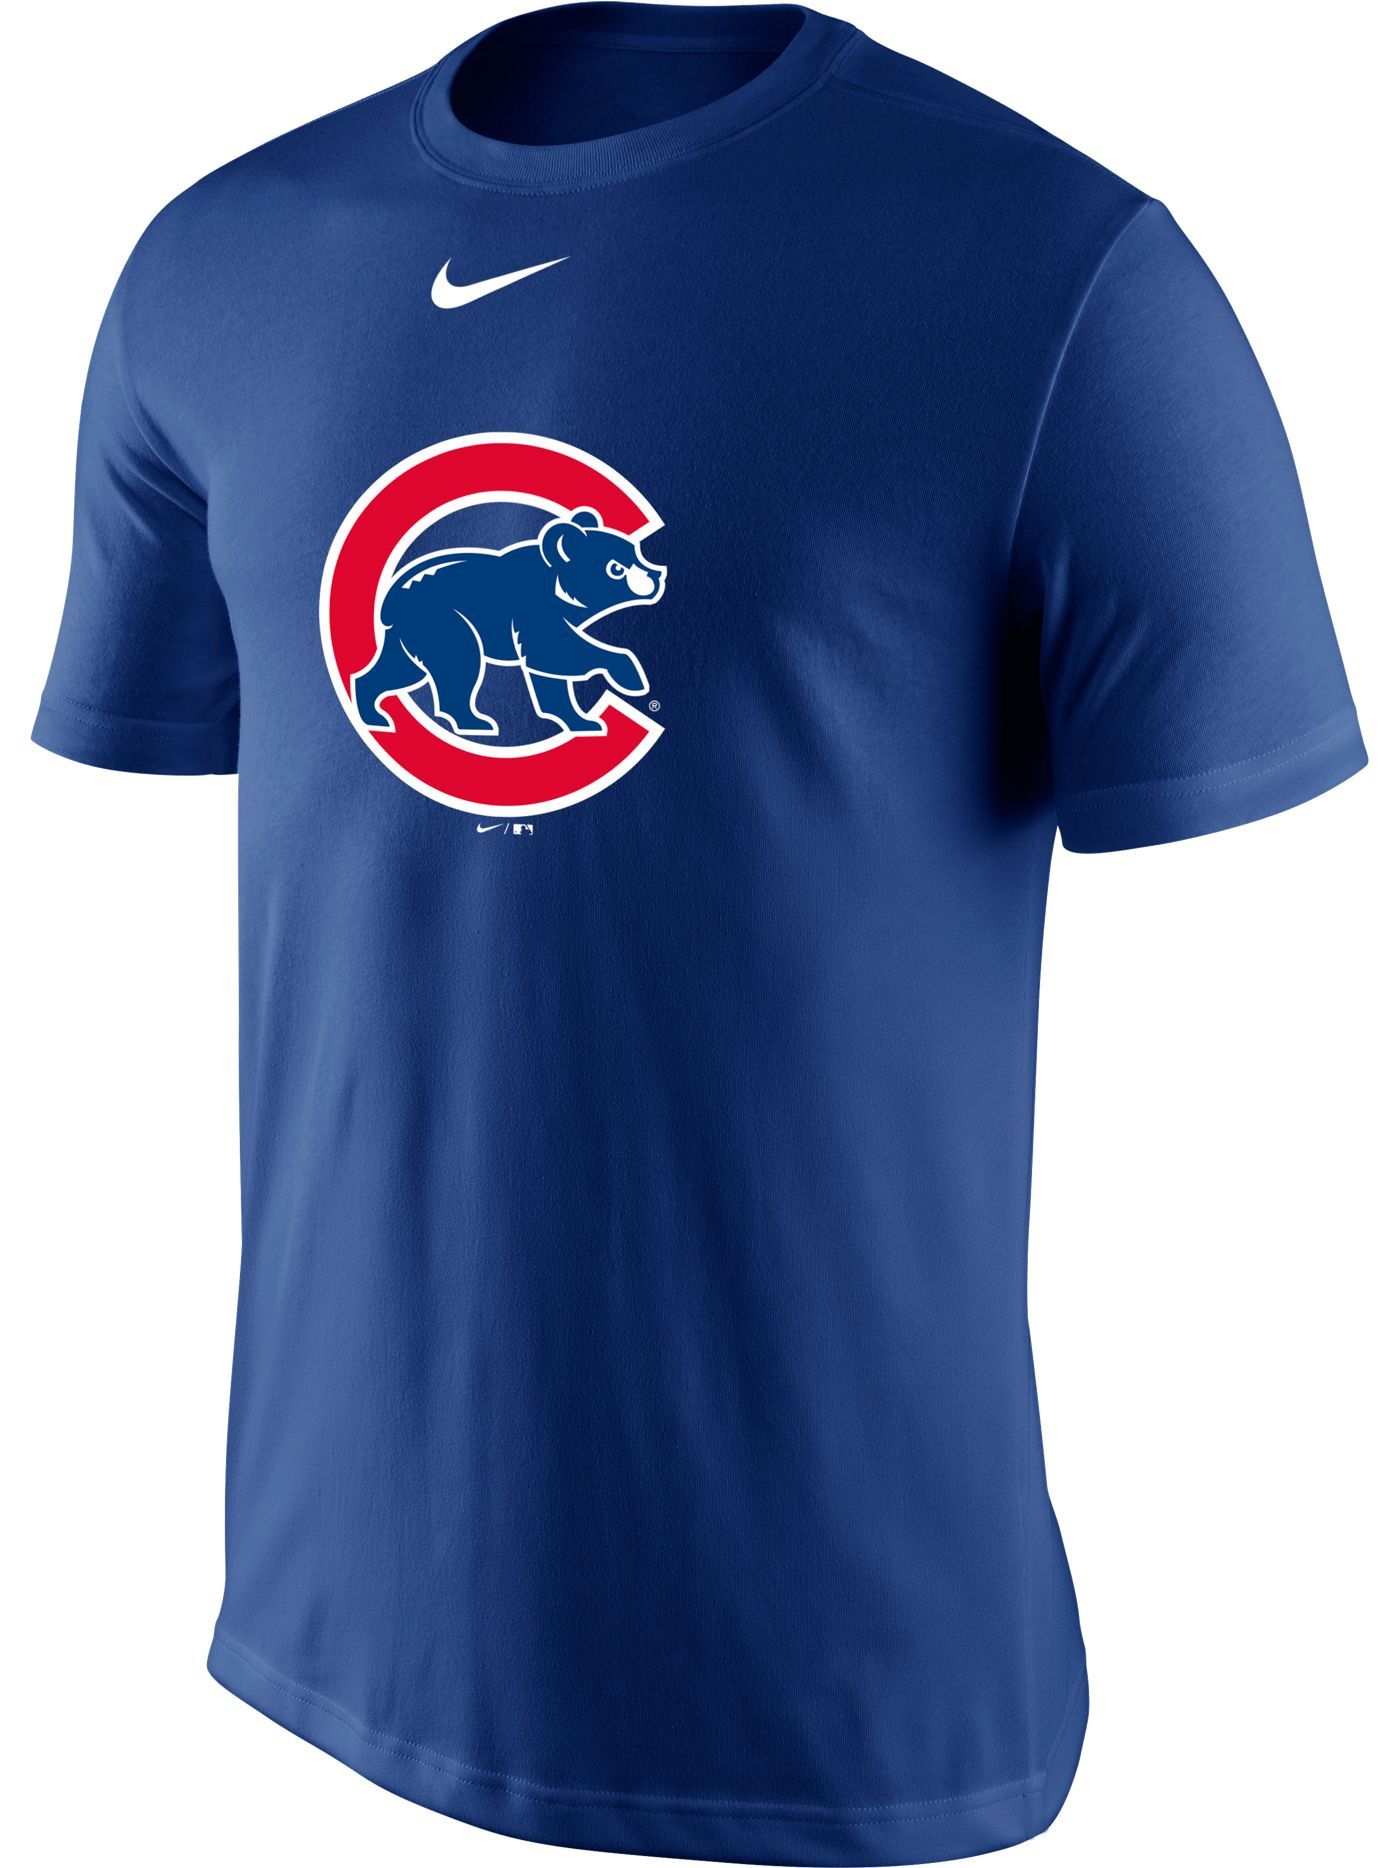 Nike Men's Chicago Cubs Dri-FIT Royal Legend T-Shirt